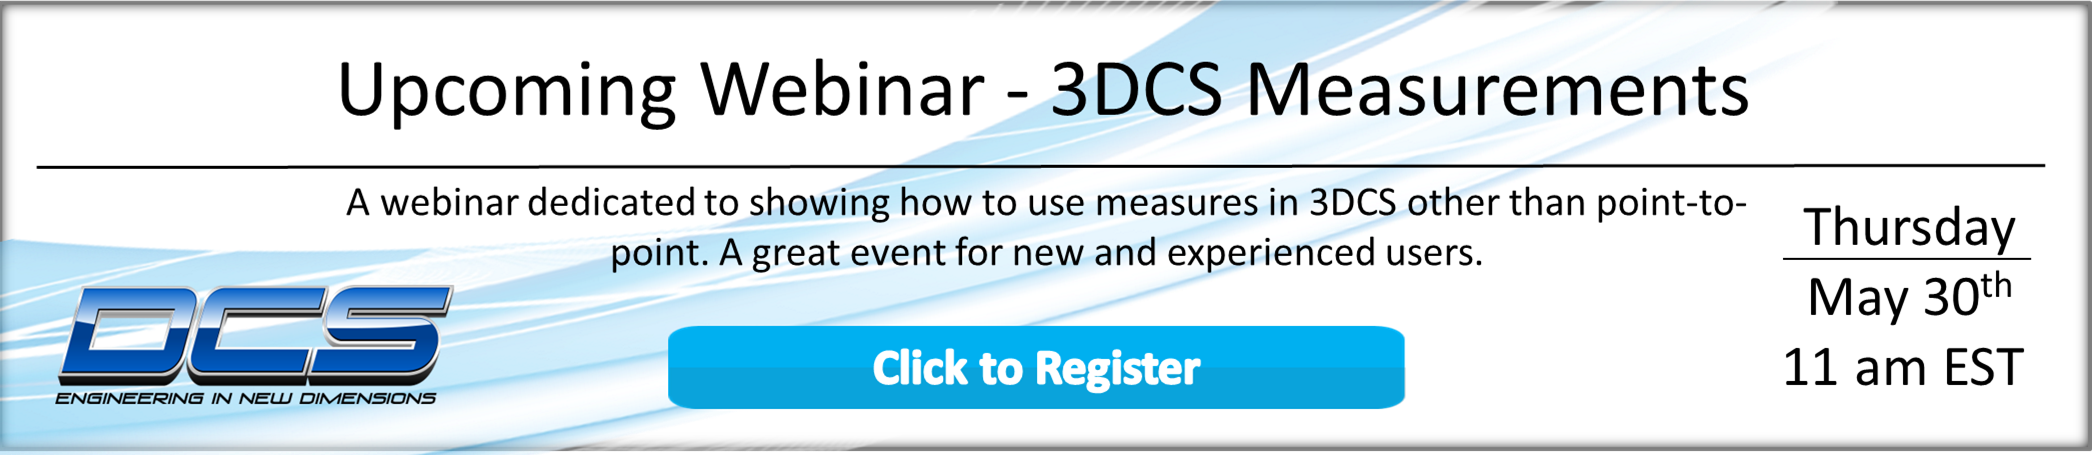 Upcoming Webinar - Simulate Measurements